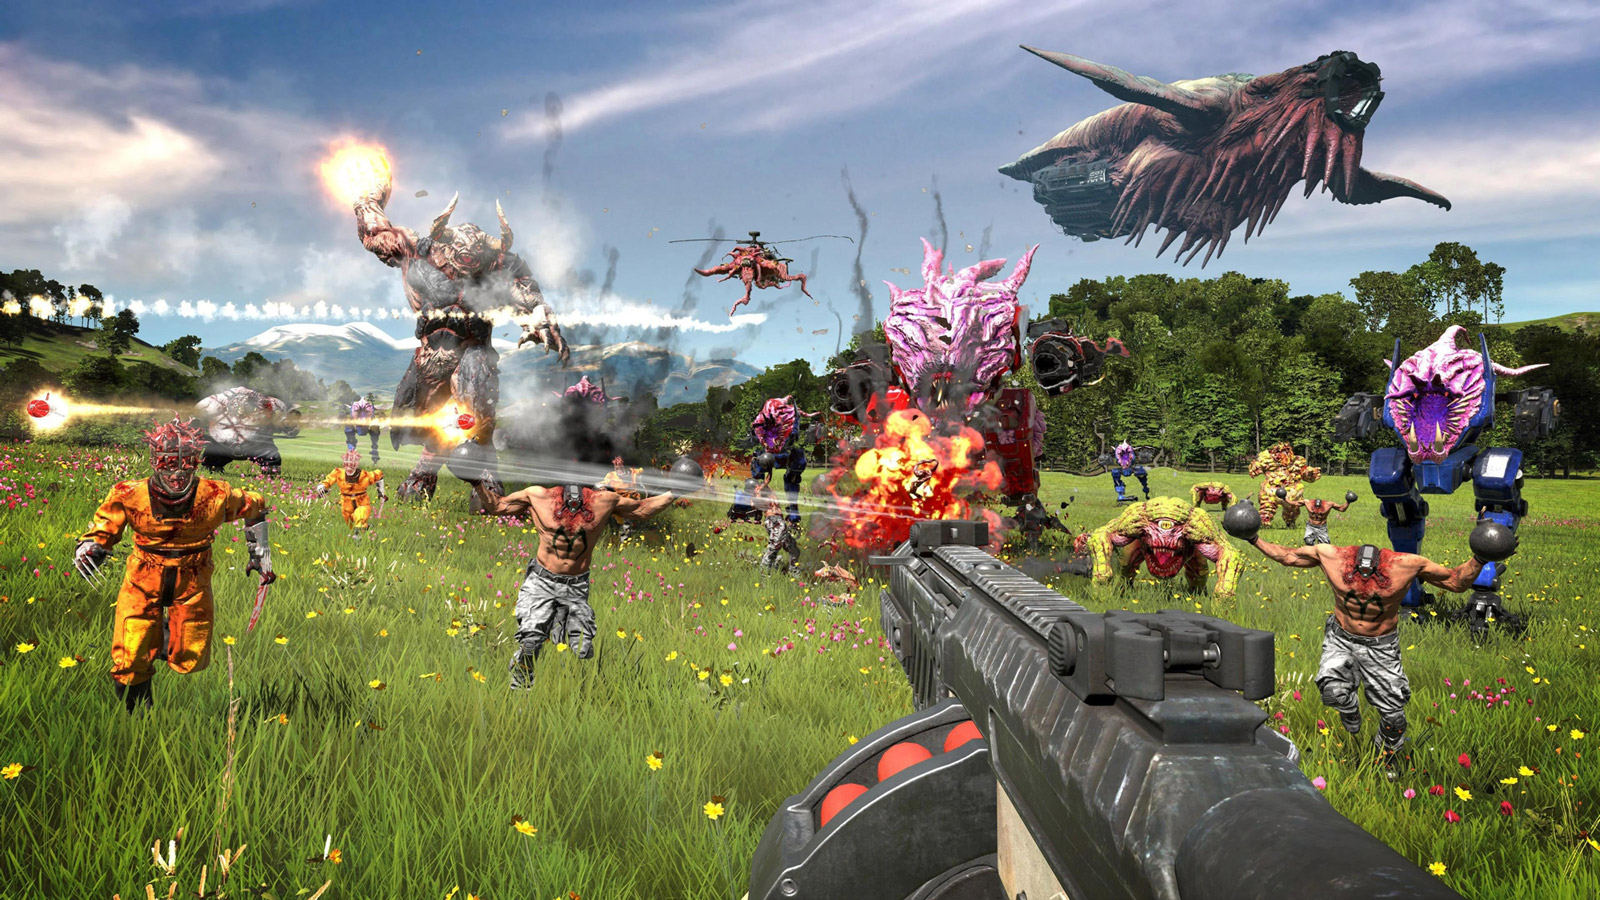 Free Serious Sam 4: Planet Badass Wallpaper in 1600x900